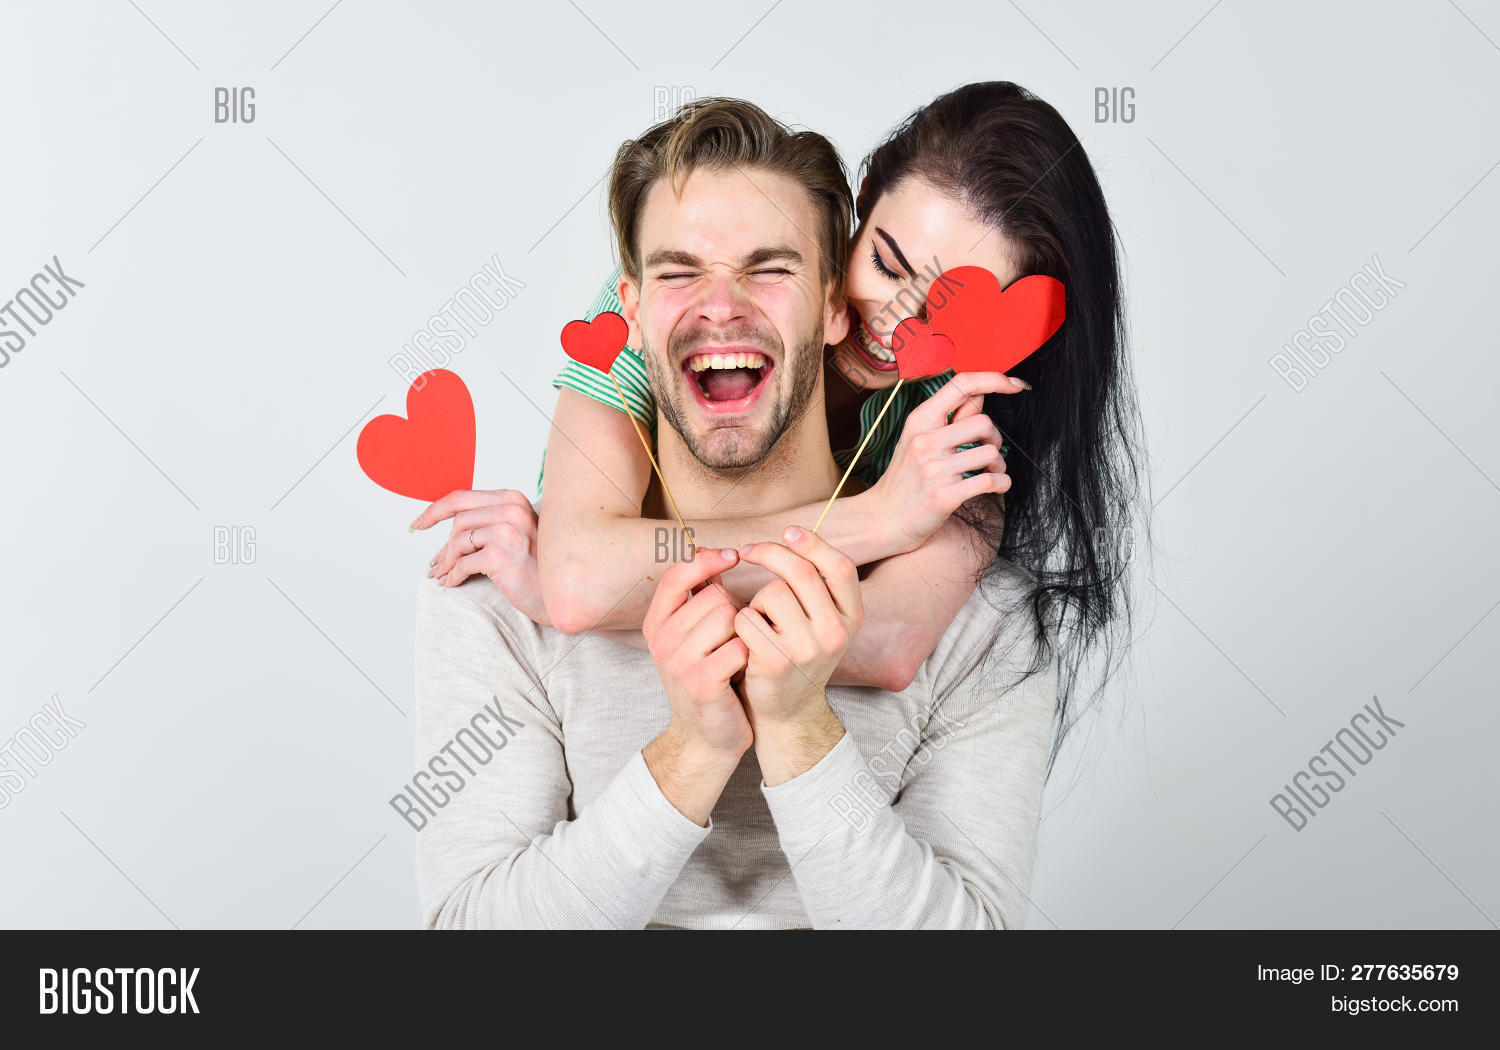 adorable,attractive,background,cards,celebrate,celebration,close,concept,confident,couple,cute,date,dating,day,family,girl,guy,handsome,happiness,happy,heart,hipster,hold,holiday,hug,ideas,lady,love,man,paper,partner,pretty,red,relations,relationship,romance,romantic,sensual,together,unshaven,up,valentine,woman,young